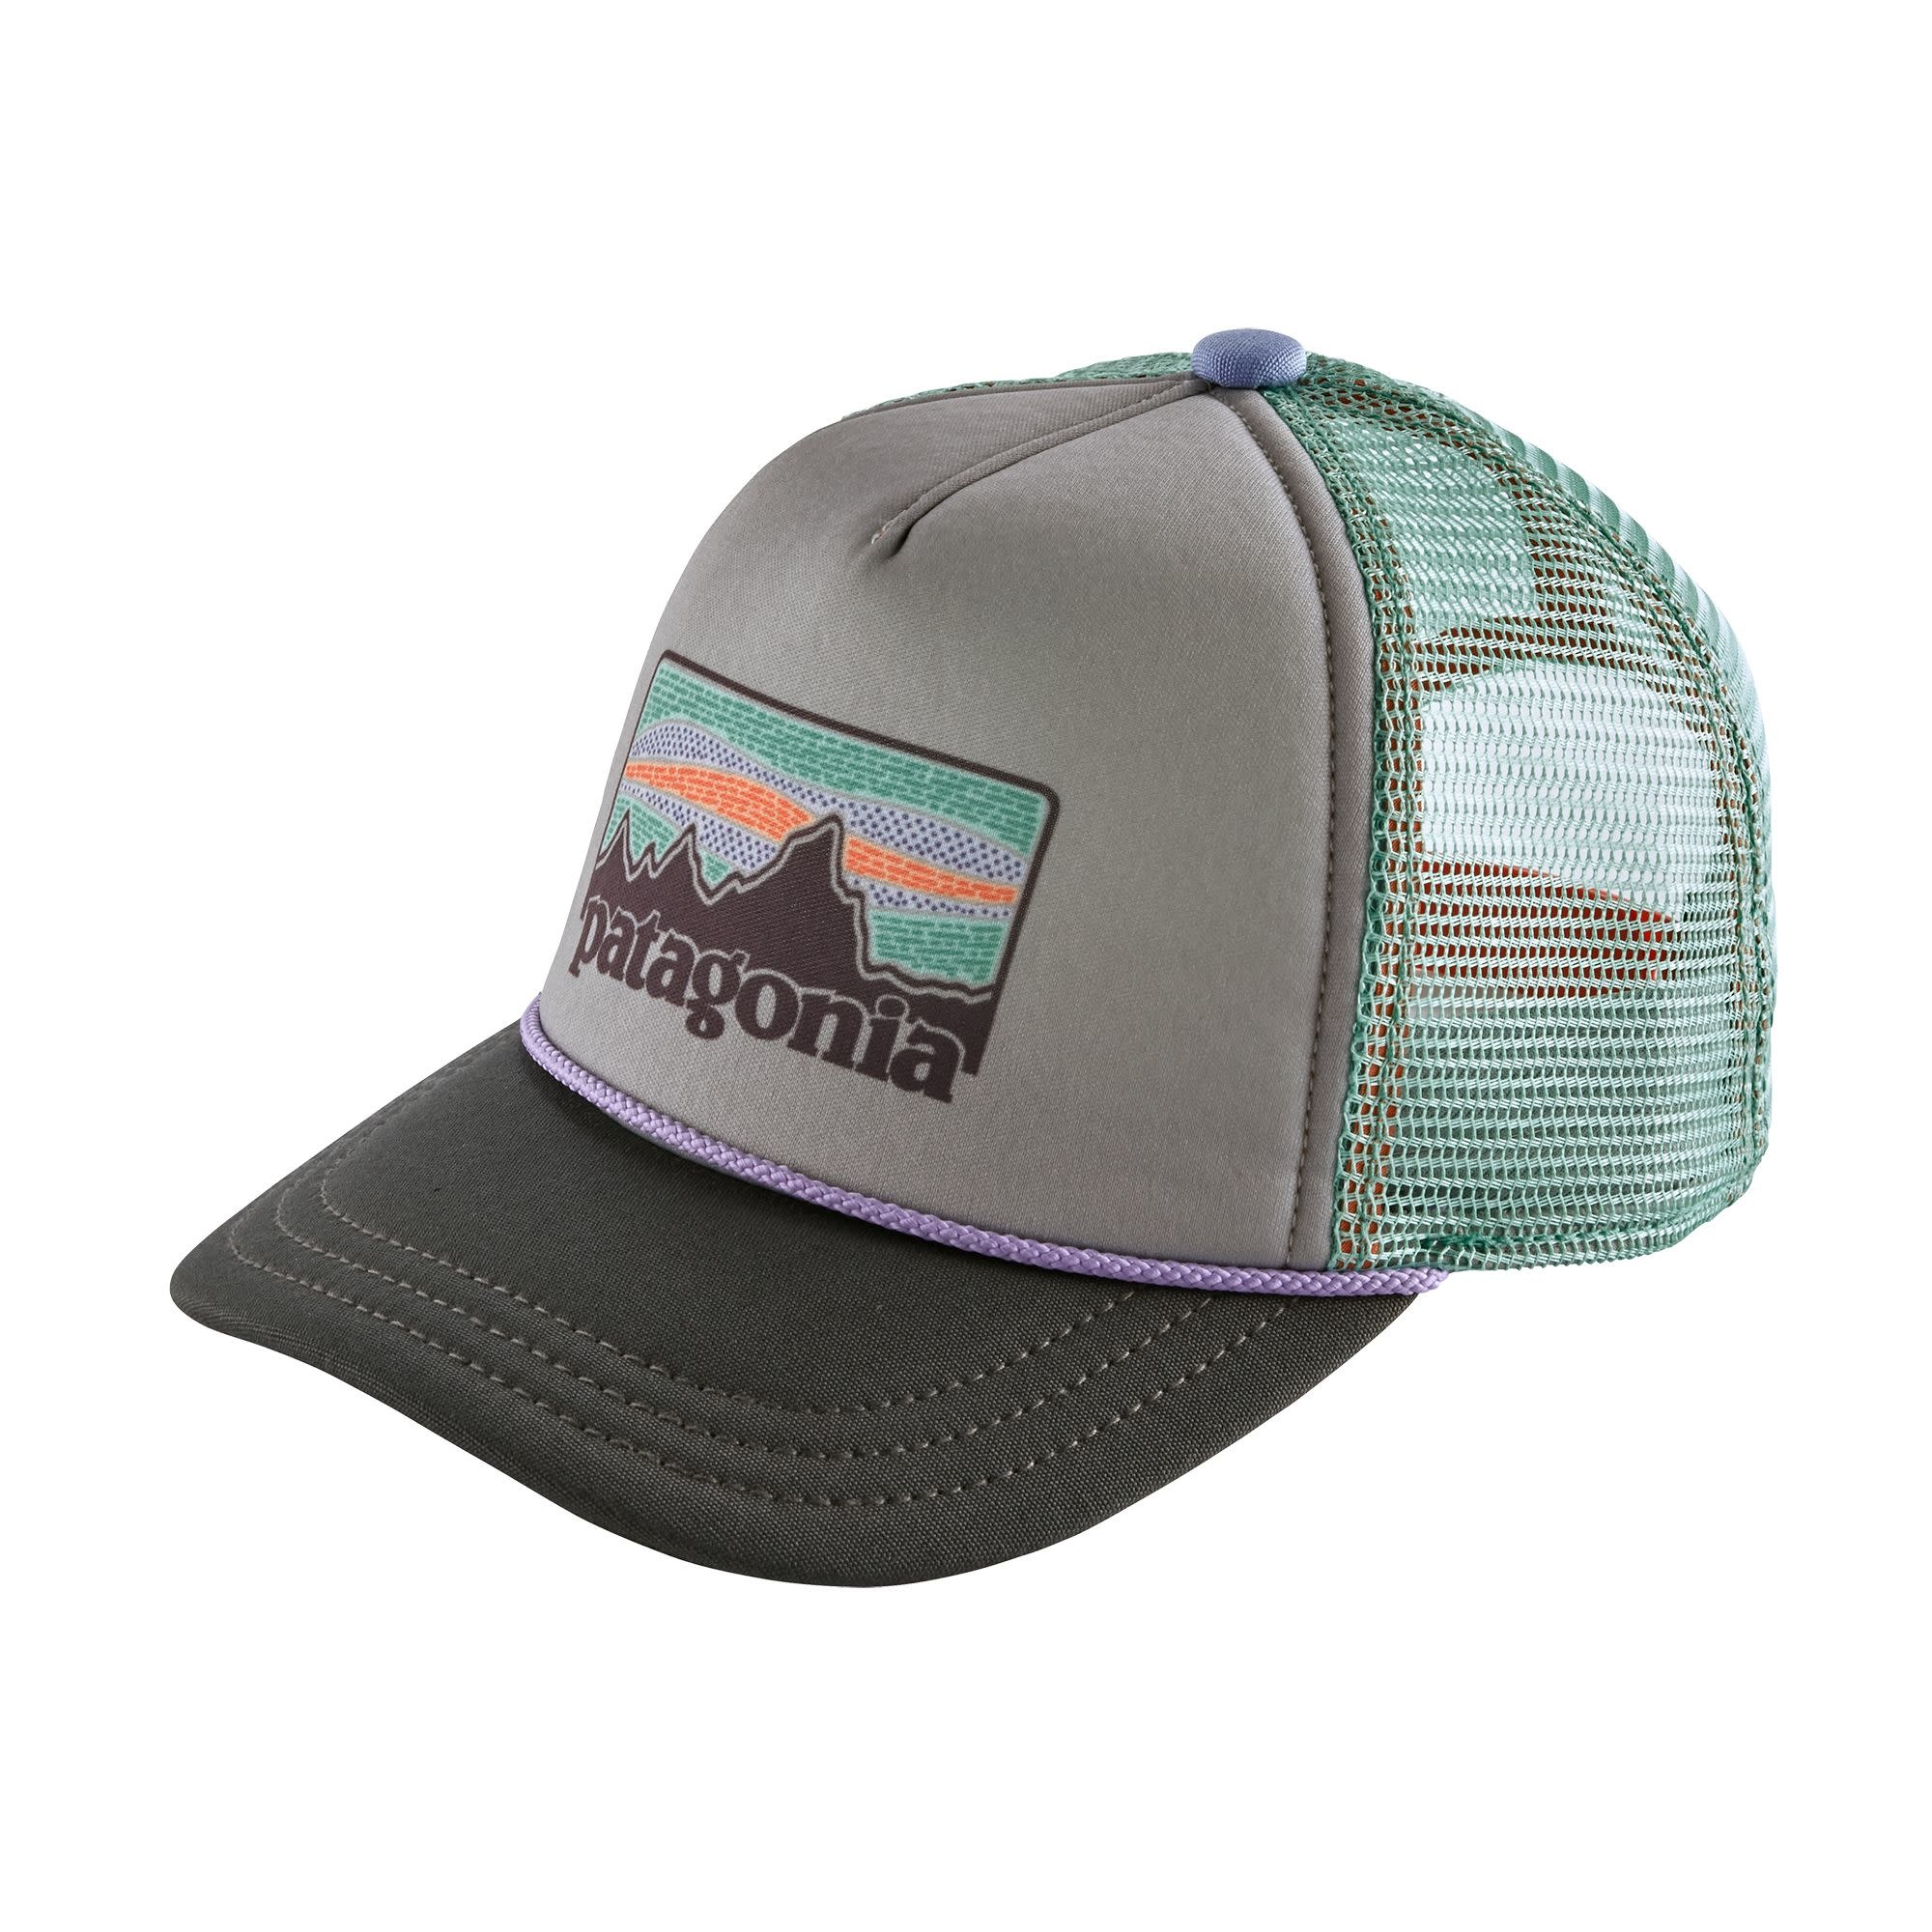 Patagonia Patagonia Kids' Interstate Hat